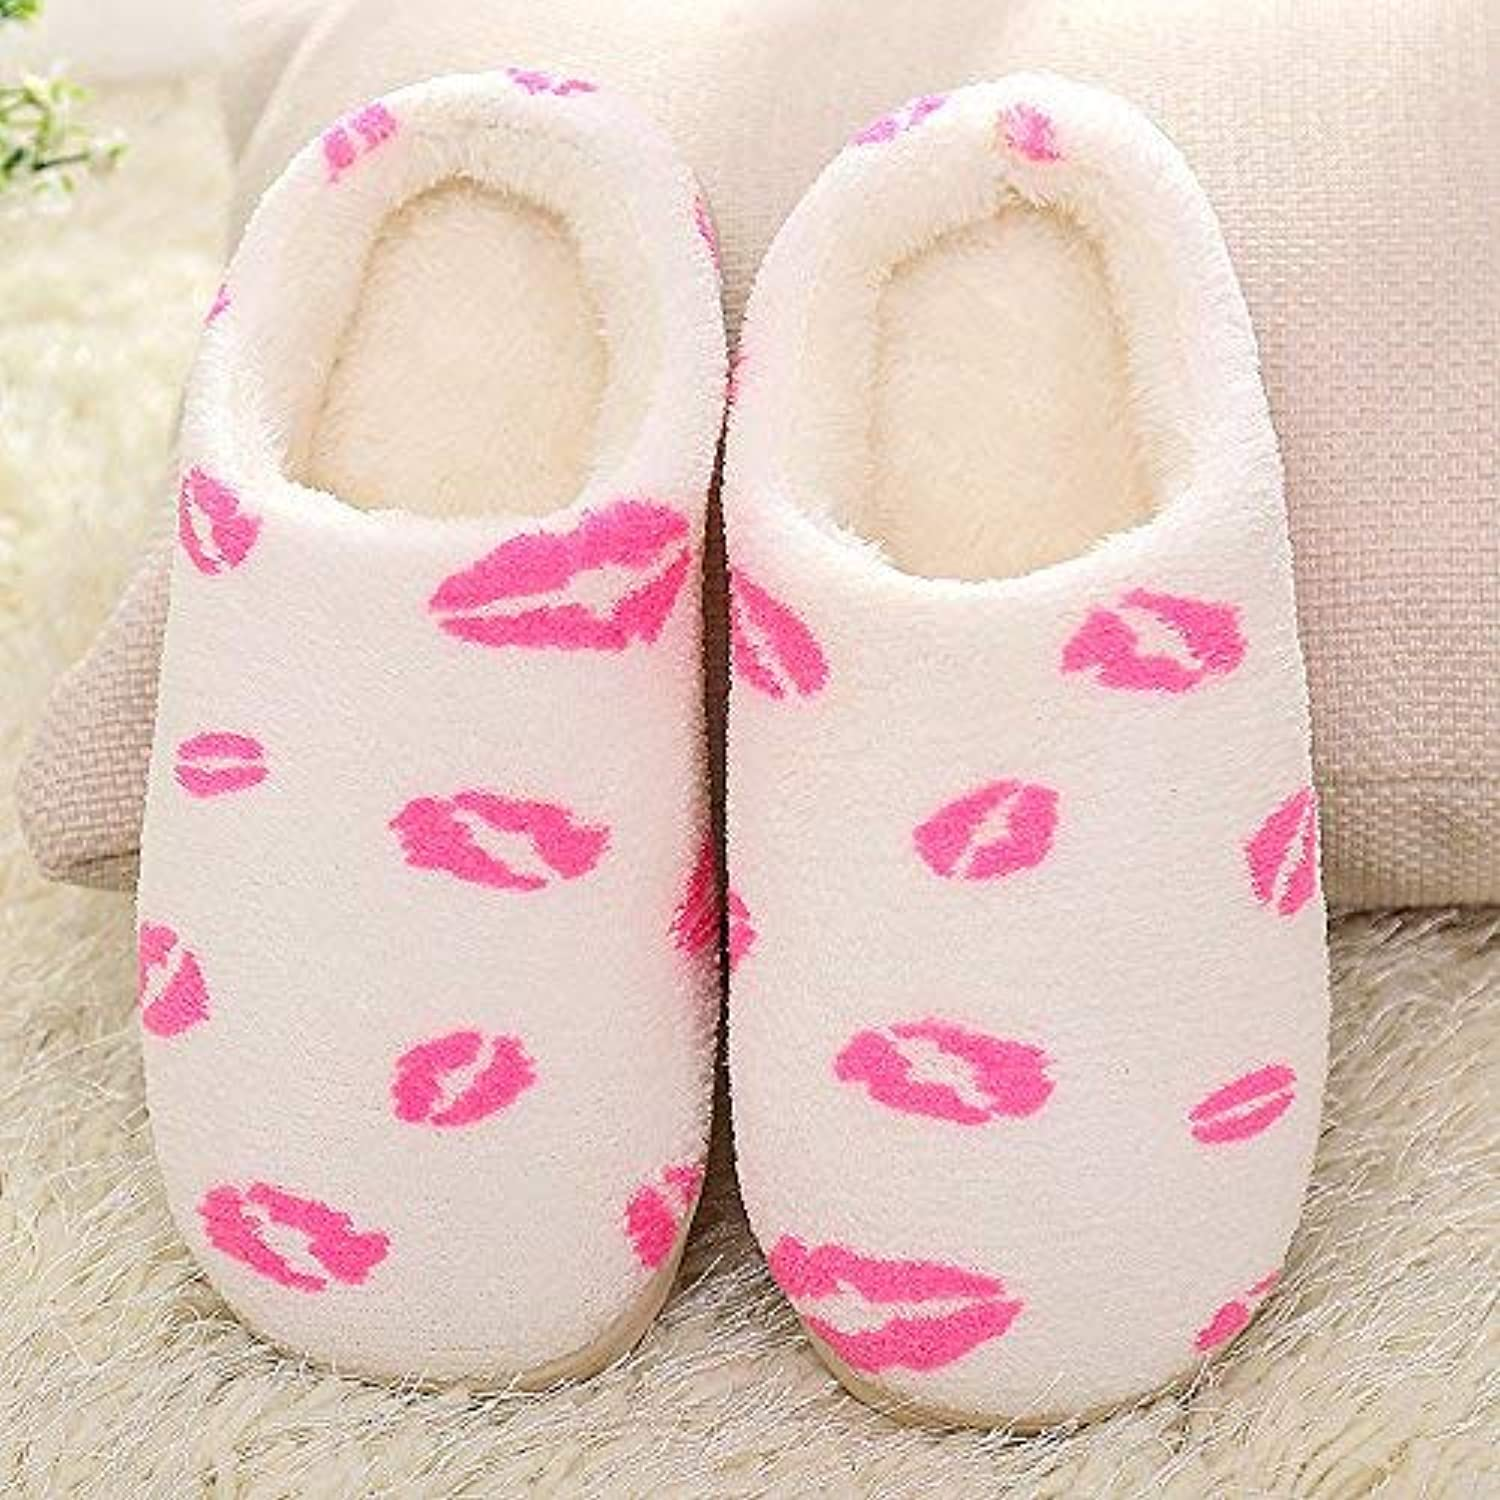 GouuoHi Womens Slippers Women 's Home Cotton Slippers Indoor Keep Warm Casual Slippers Mixed color Black White Pink Personality Quality for Women